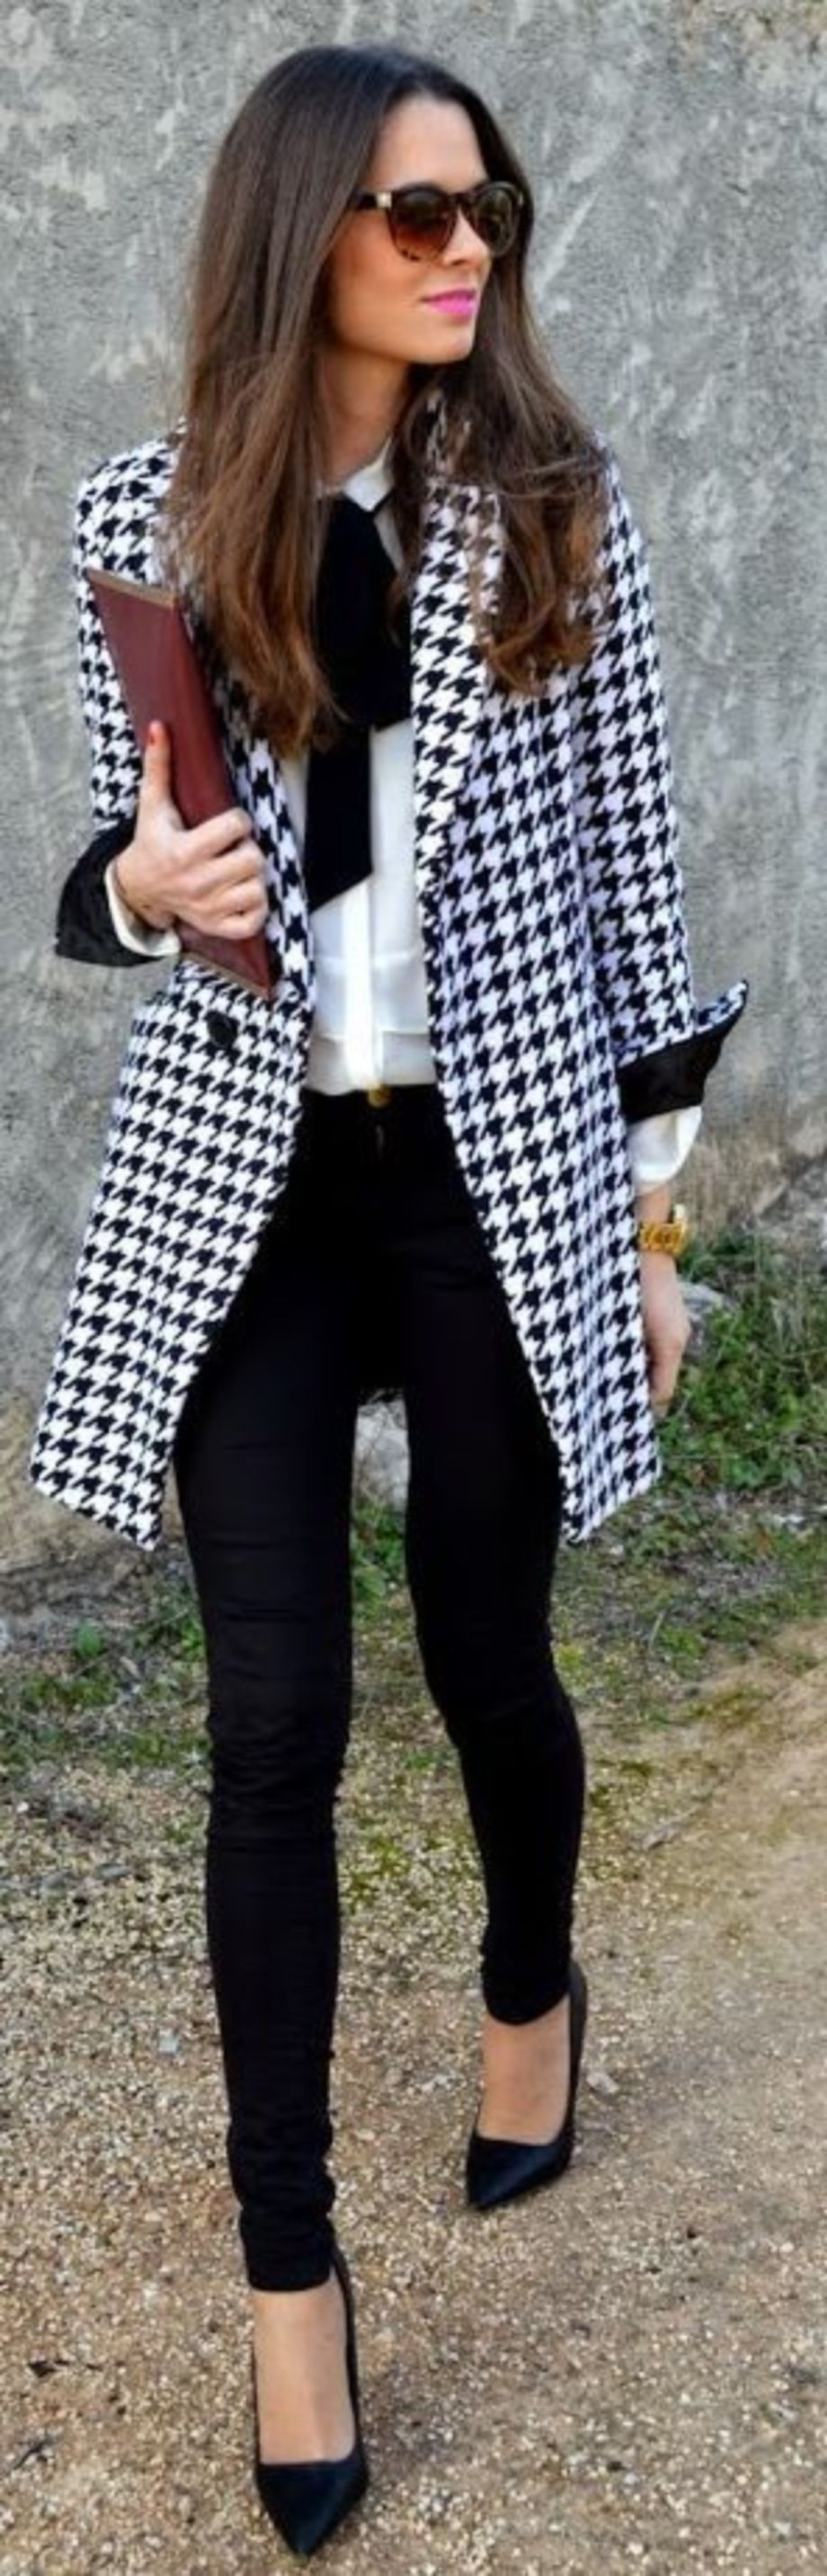 Black and white houndstooth coat, white blouse with black bow, black skinny  cut trousers, oxblood clutch, and black heels